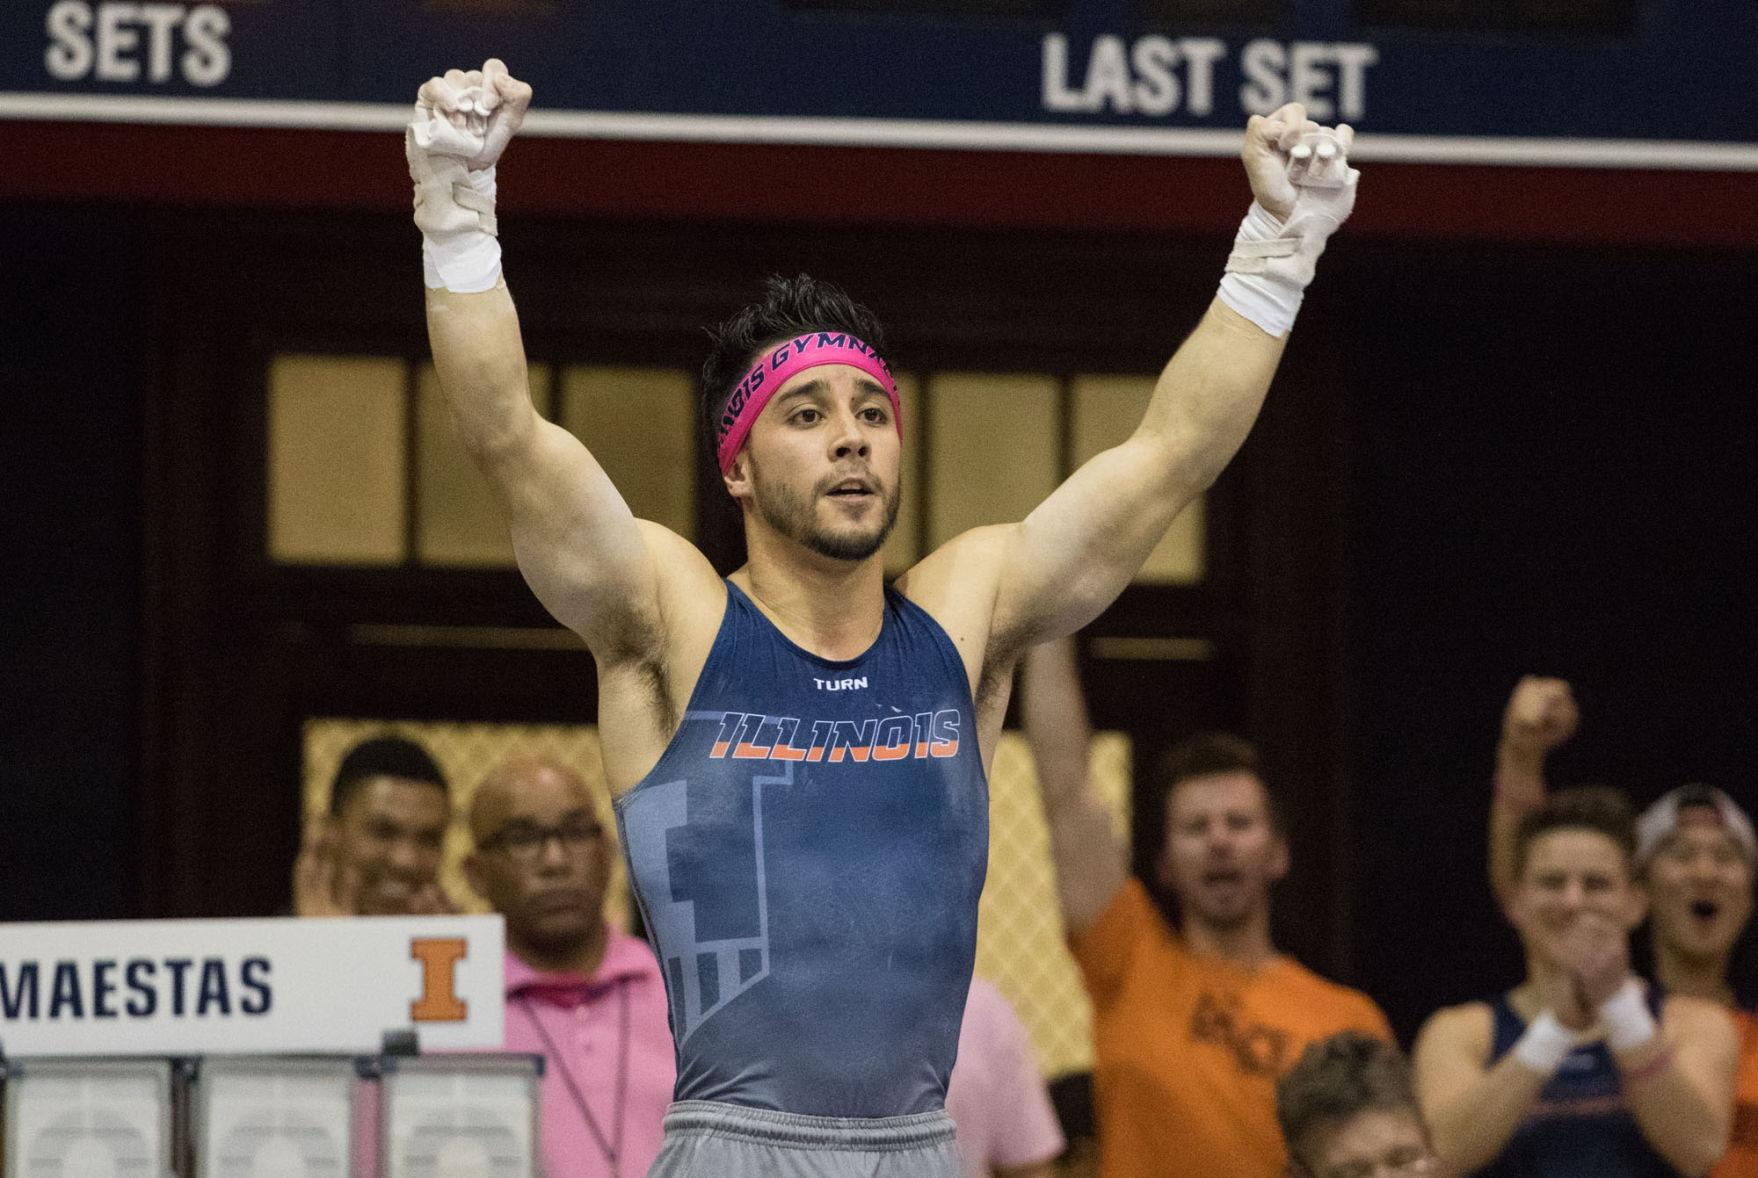 Illinois' C.J. Maestas sticks his landing during the rings event at the gymnastics match vs. Minnesota at Huff Hall on Saturday. Illinois won 435.200-419.800.